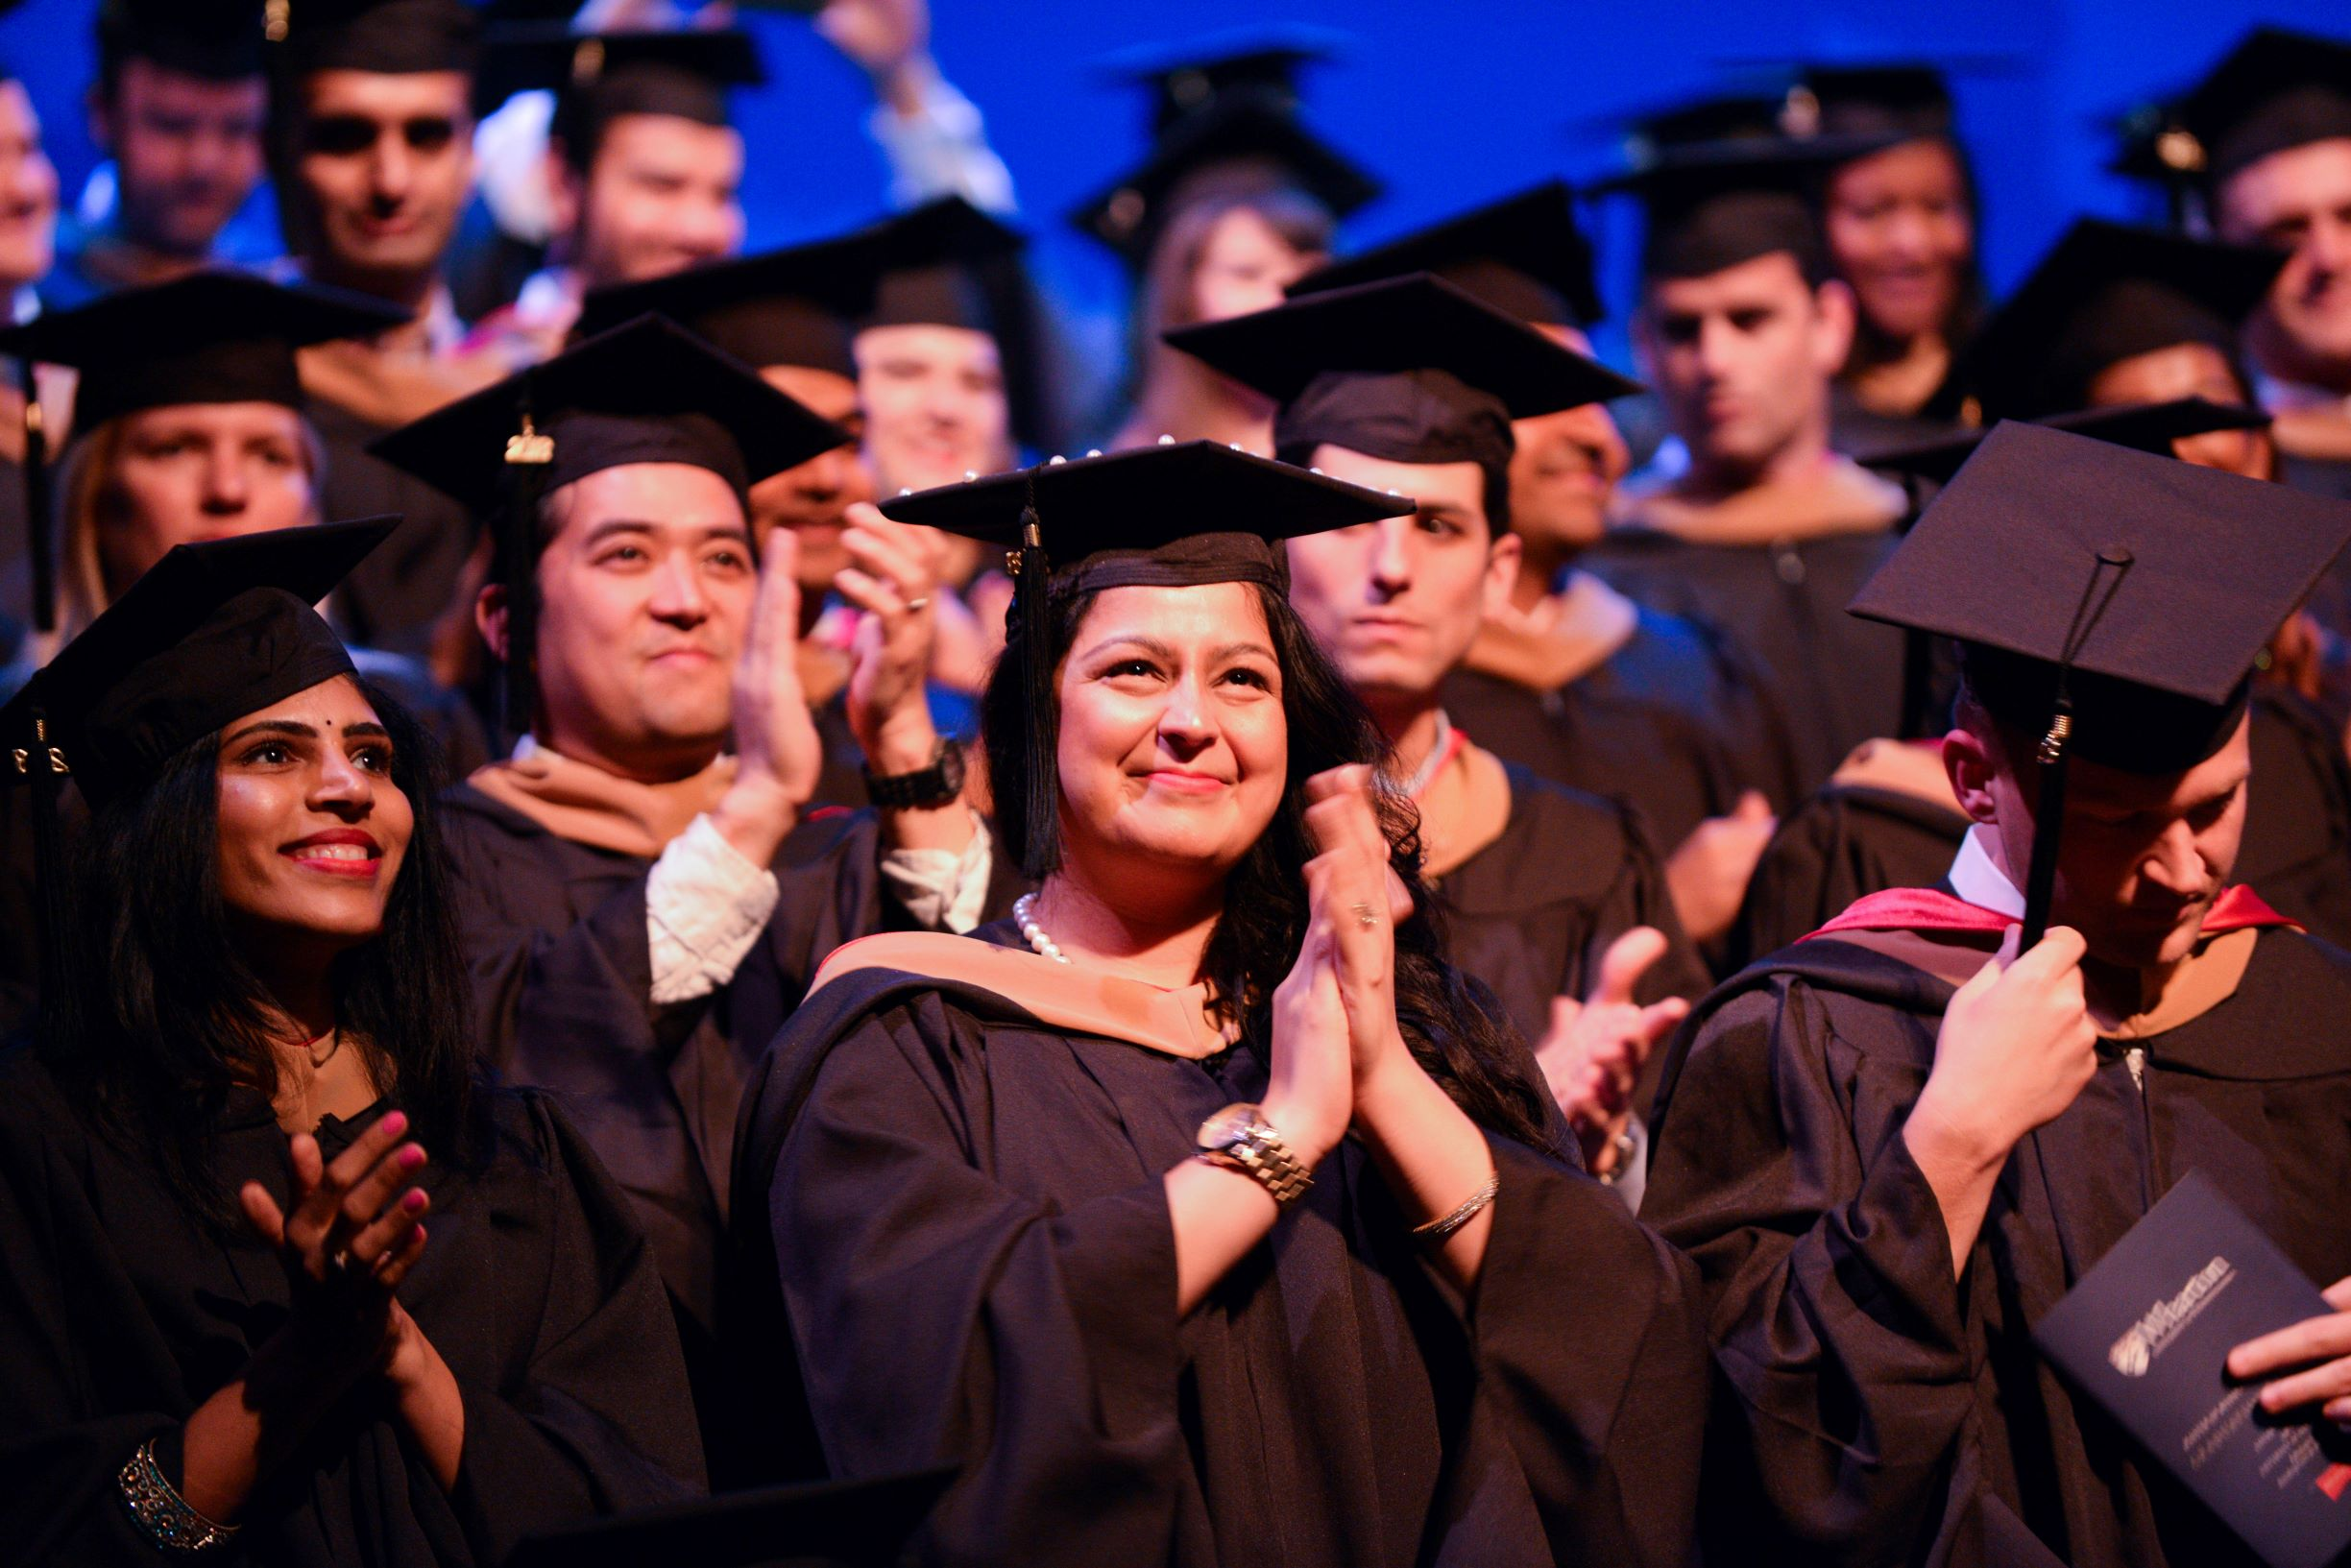 large group of MBA graduates at a commencement ceremony, clapping and smiling